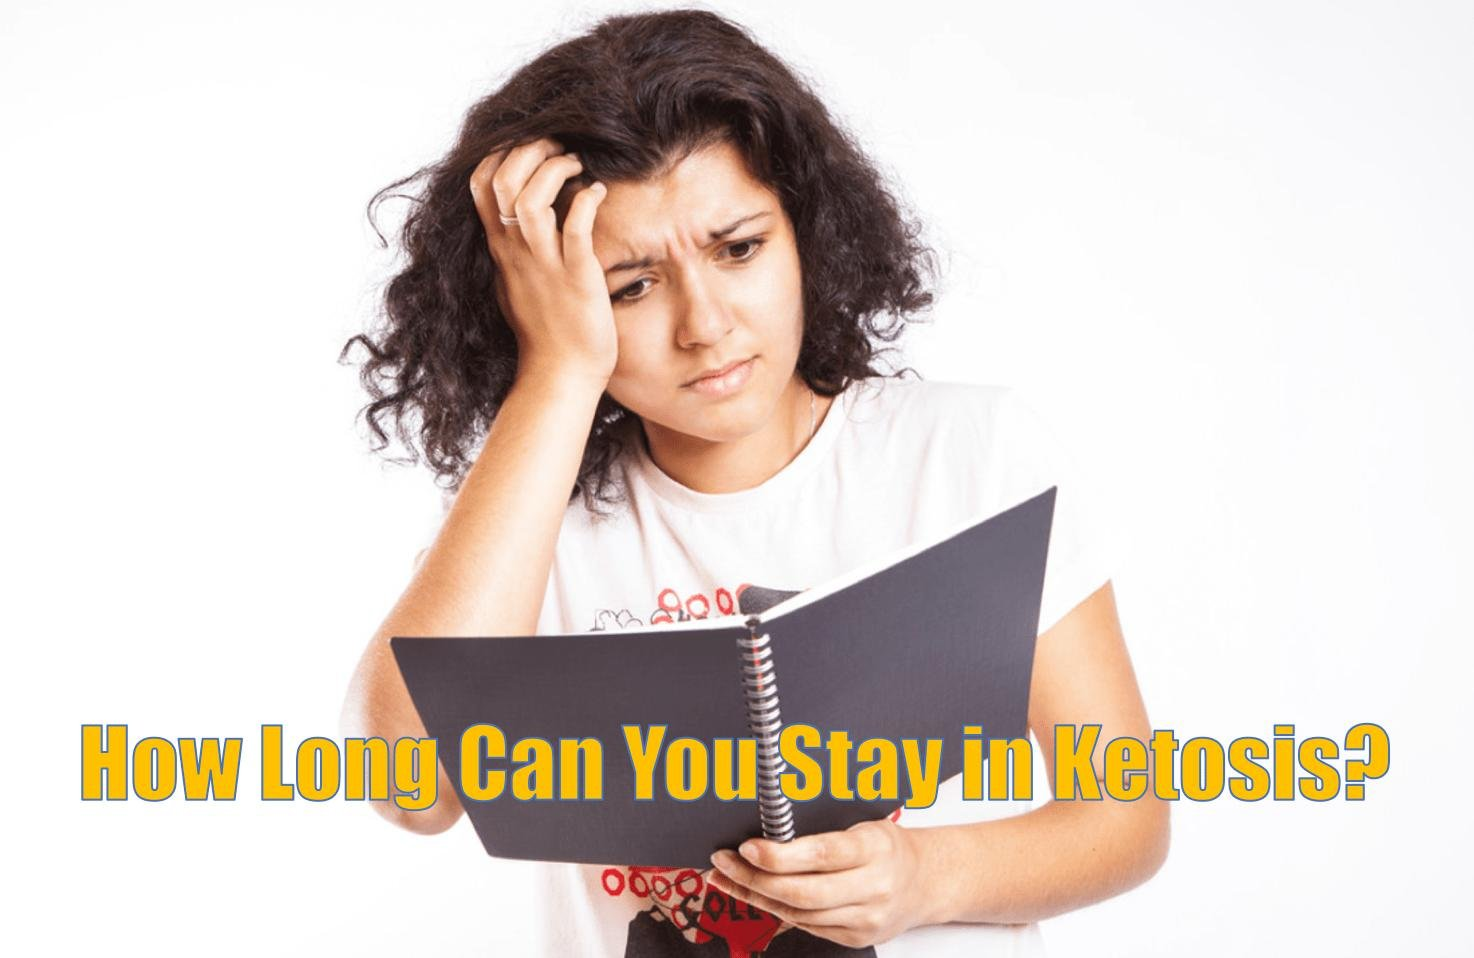 How Long Can You Stay In Ketosis Safely?